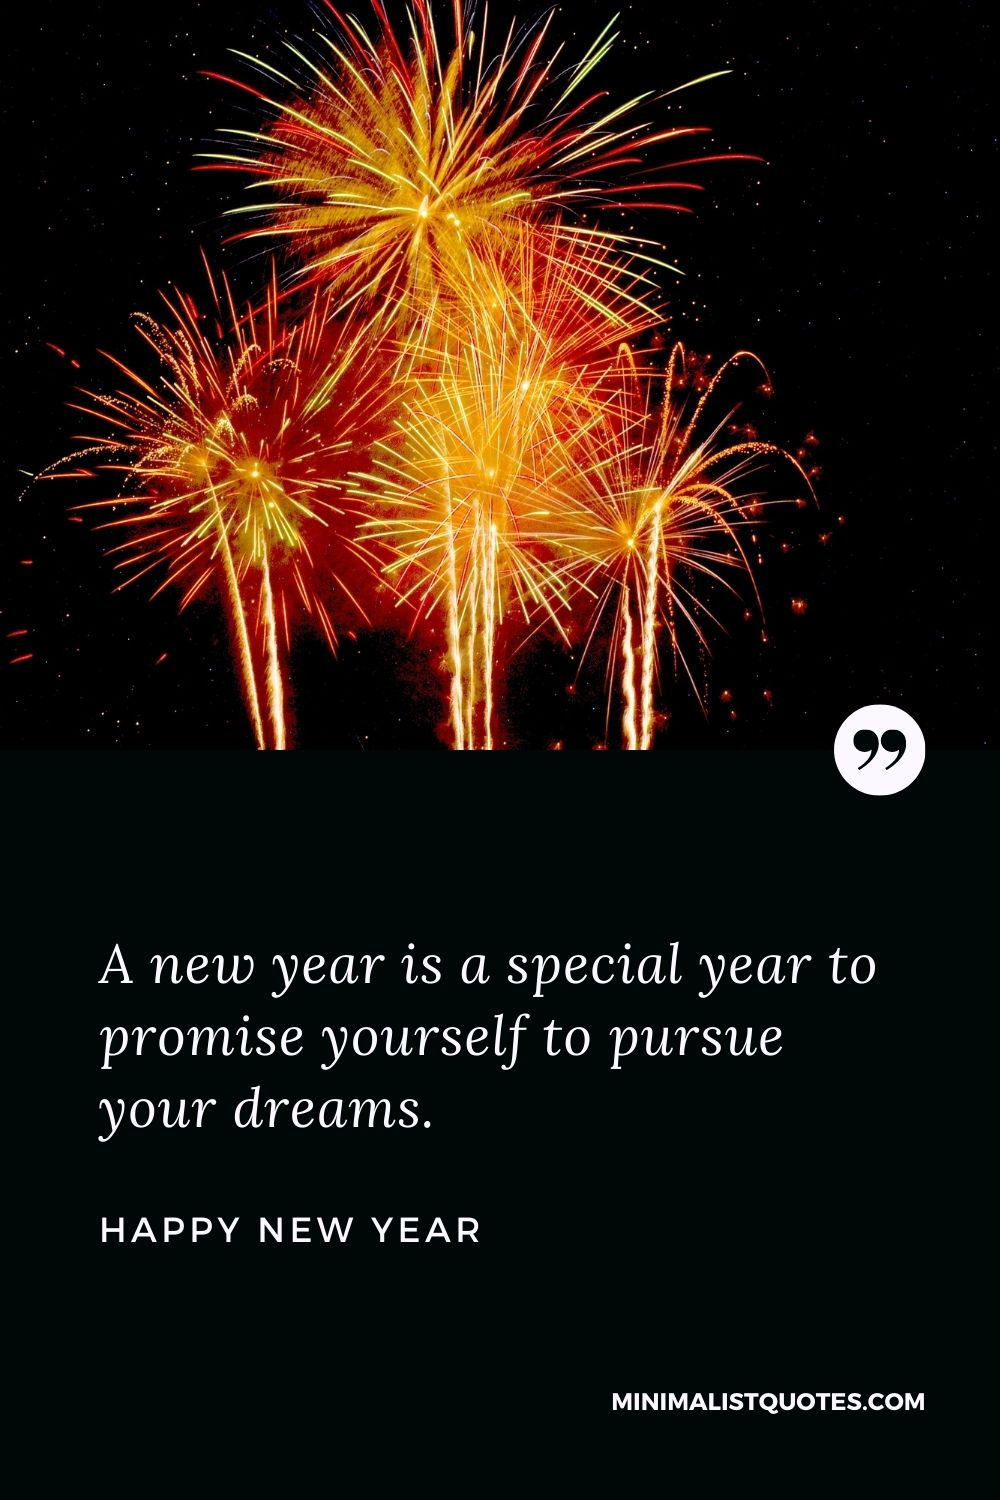 New Year Wish - A new year is a special year to promise yourself to pursue your dreams.